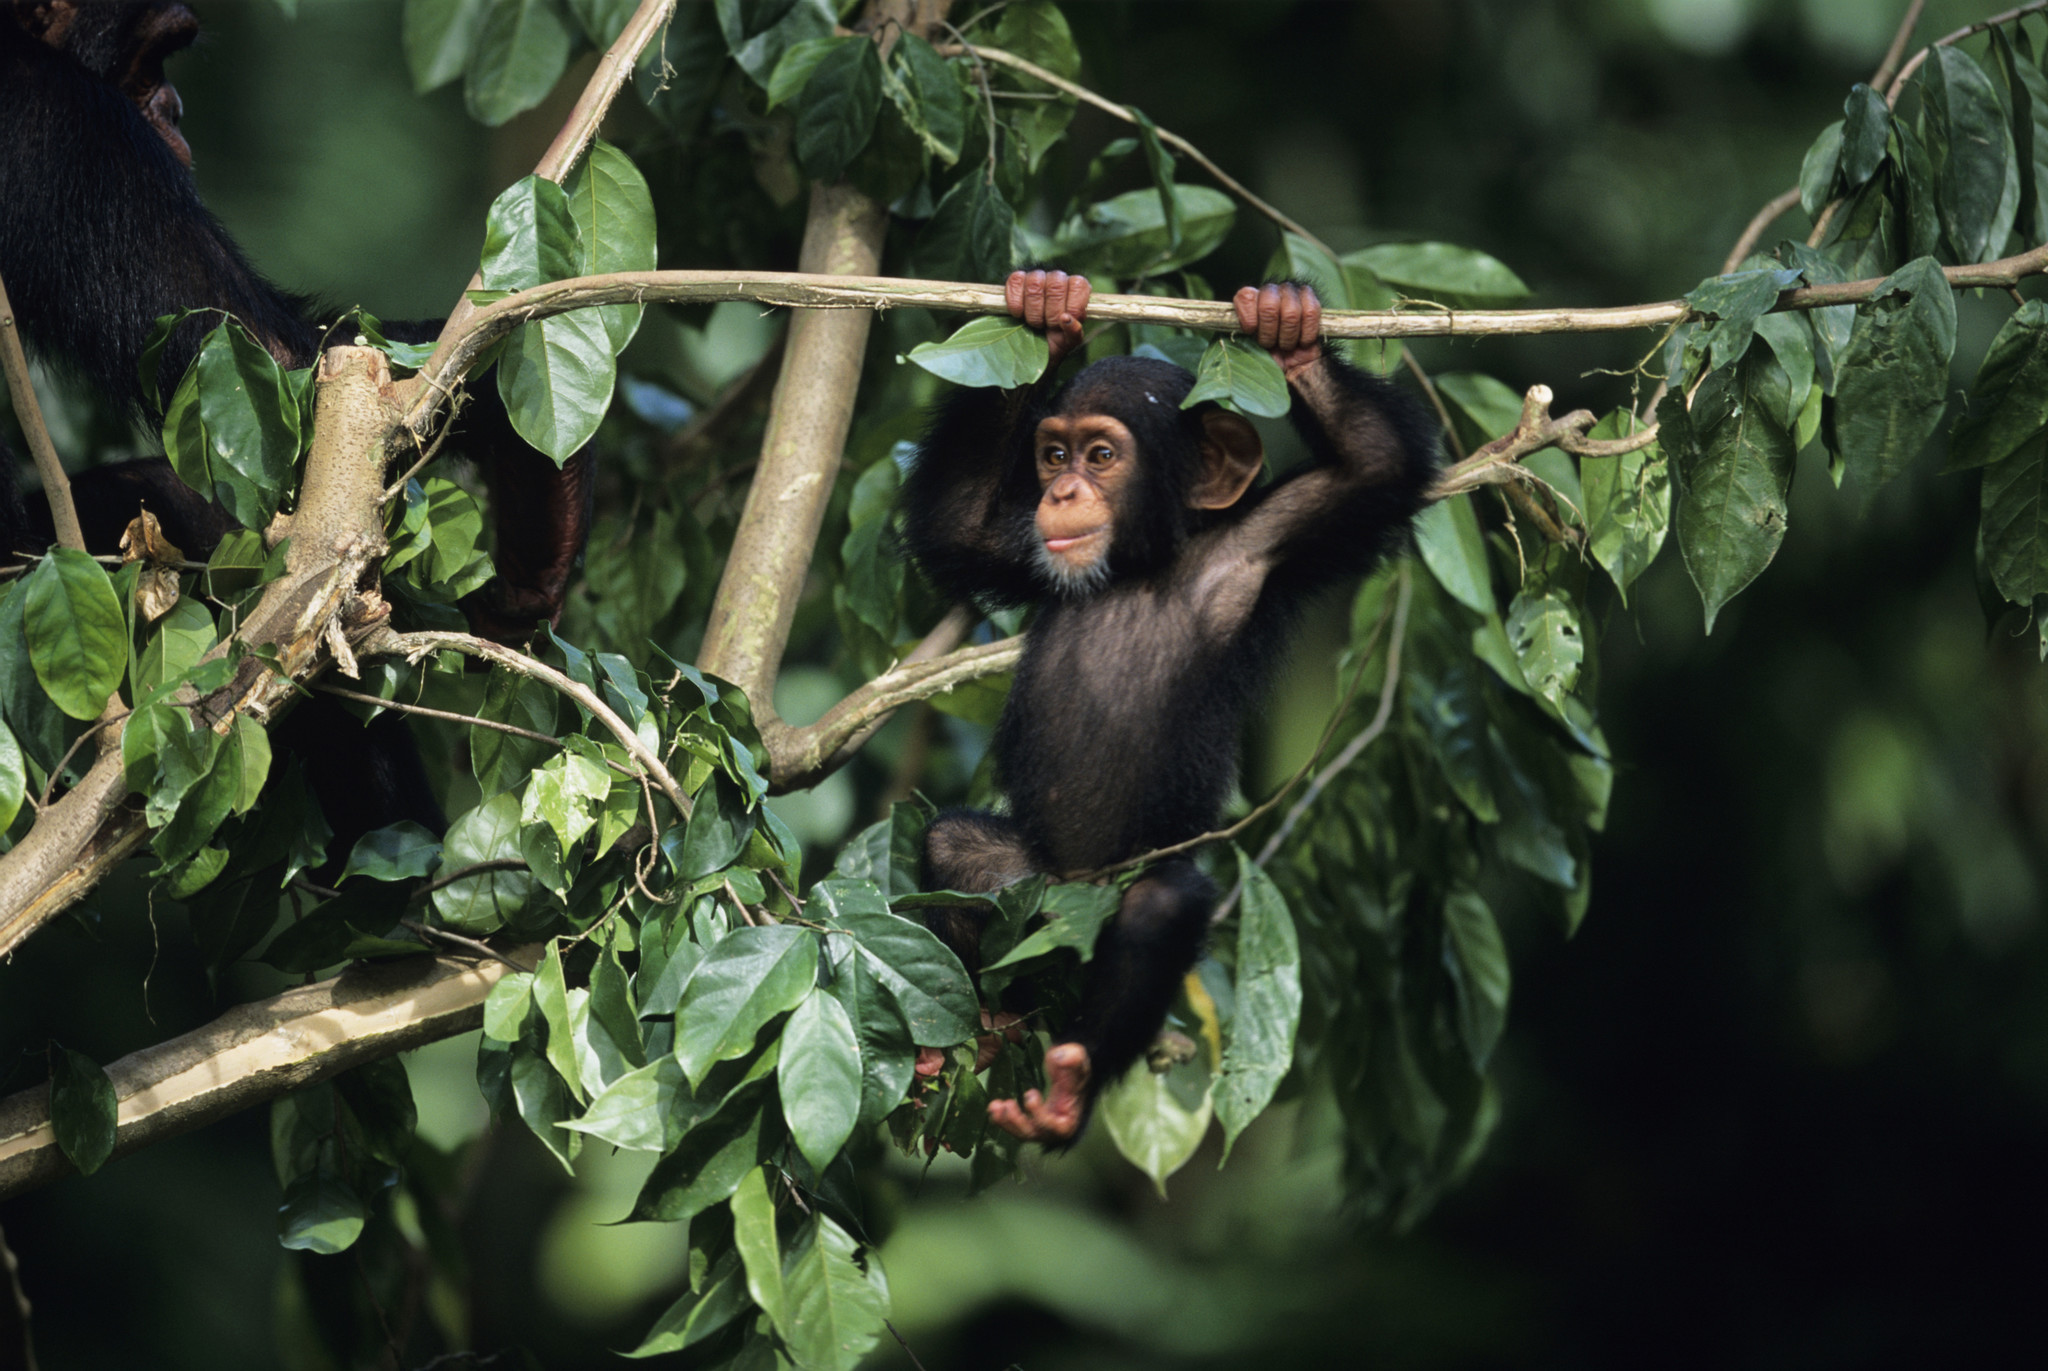 Young chimpanzee (Pan troglodytes) hanging on tree branch, close-up